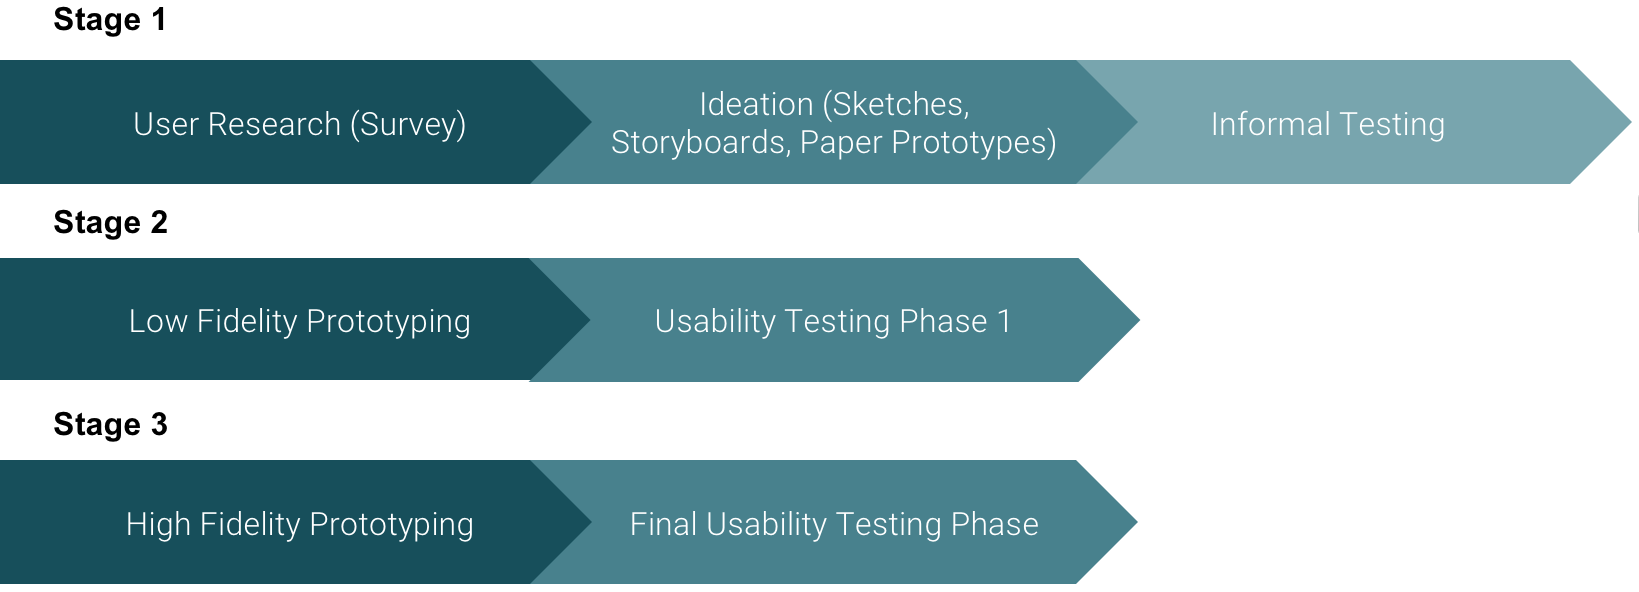 An infographic showing the three stages in our design process